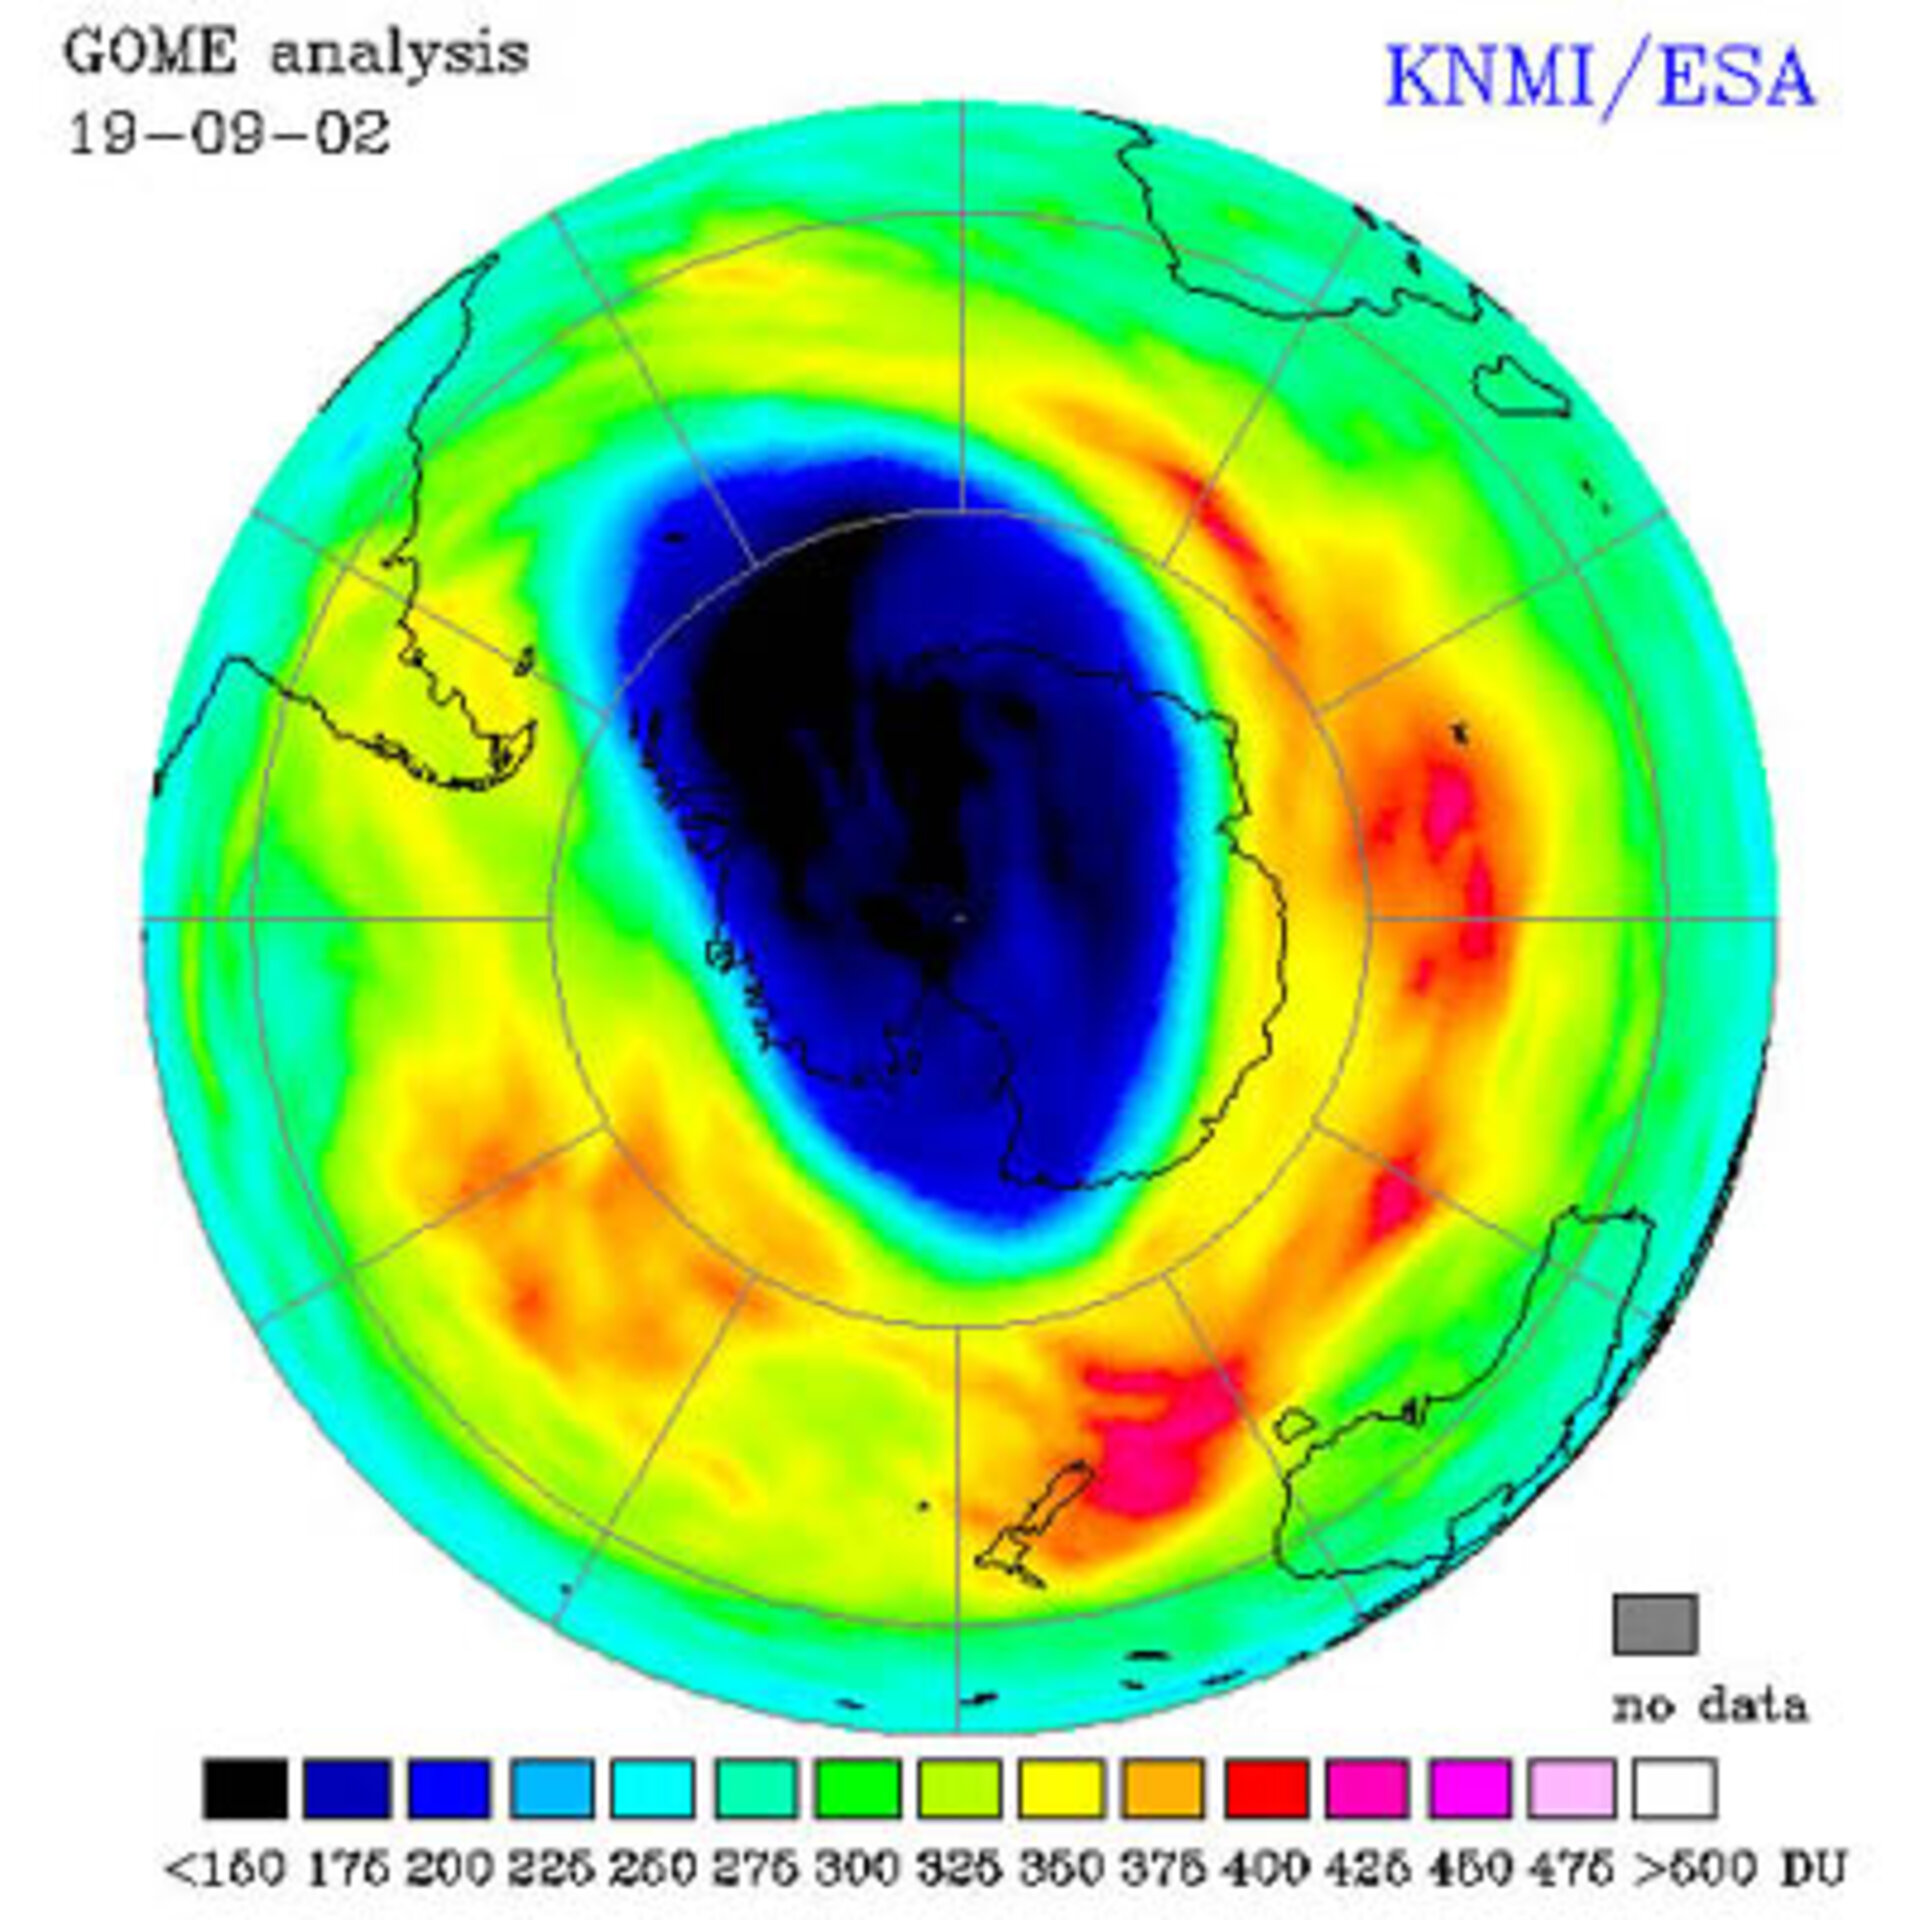 Antarctic ozone hole as observed on 19 September